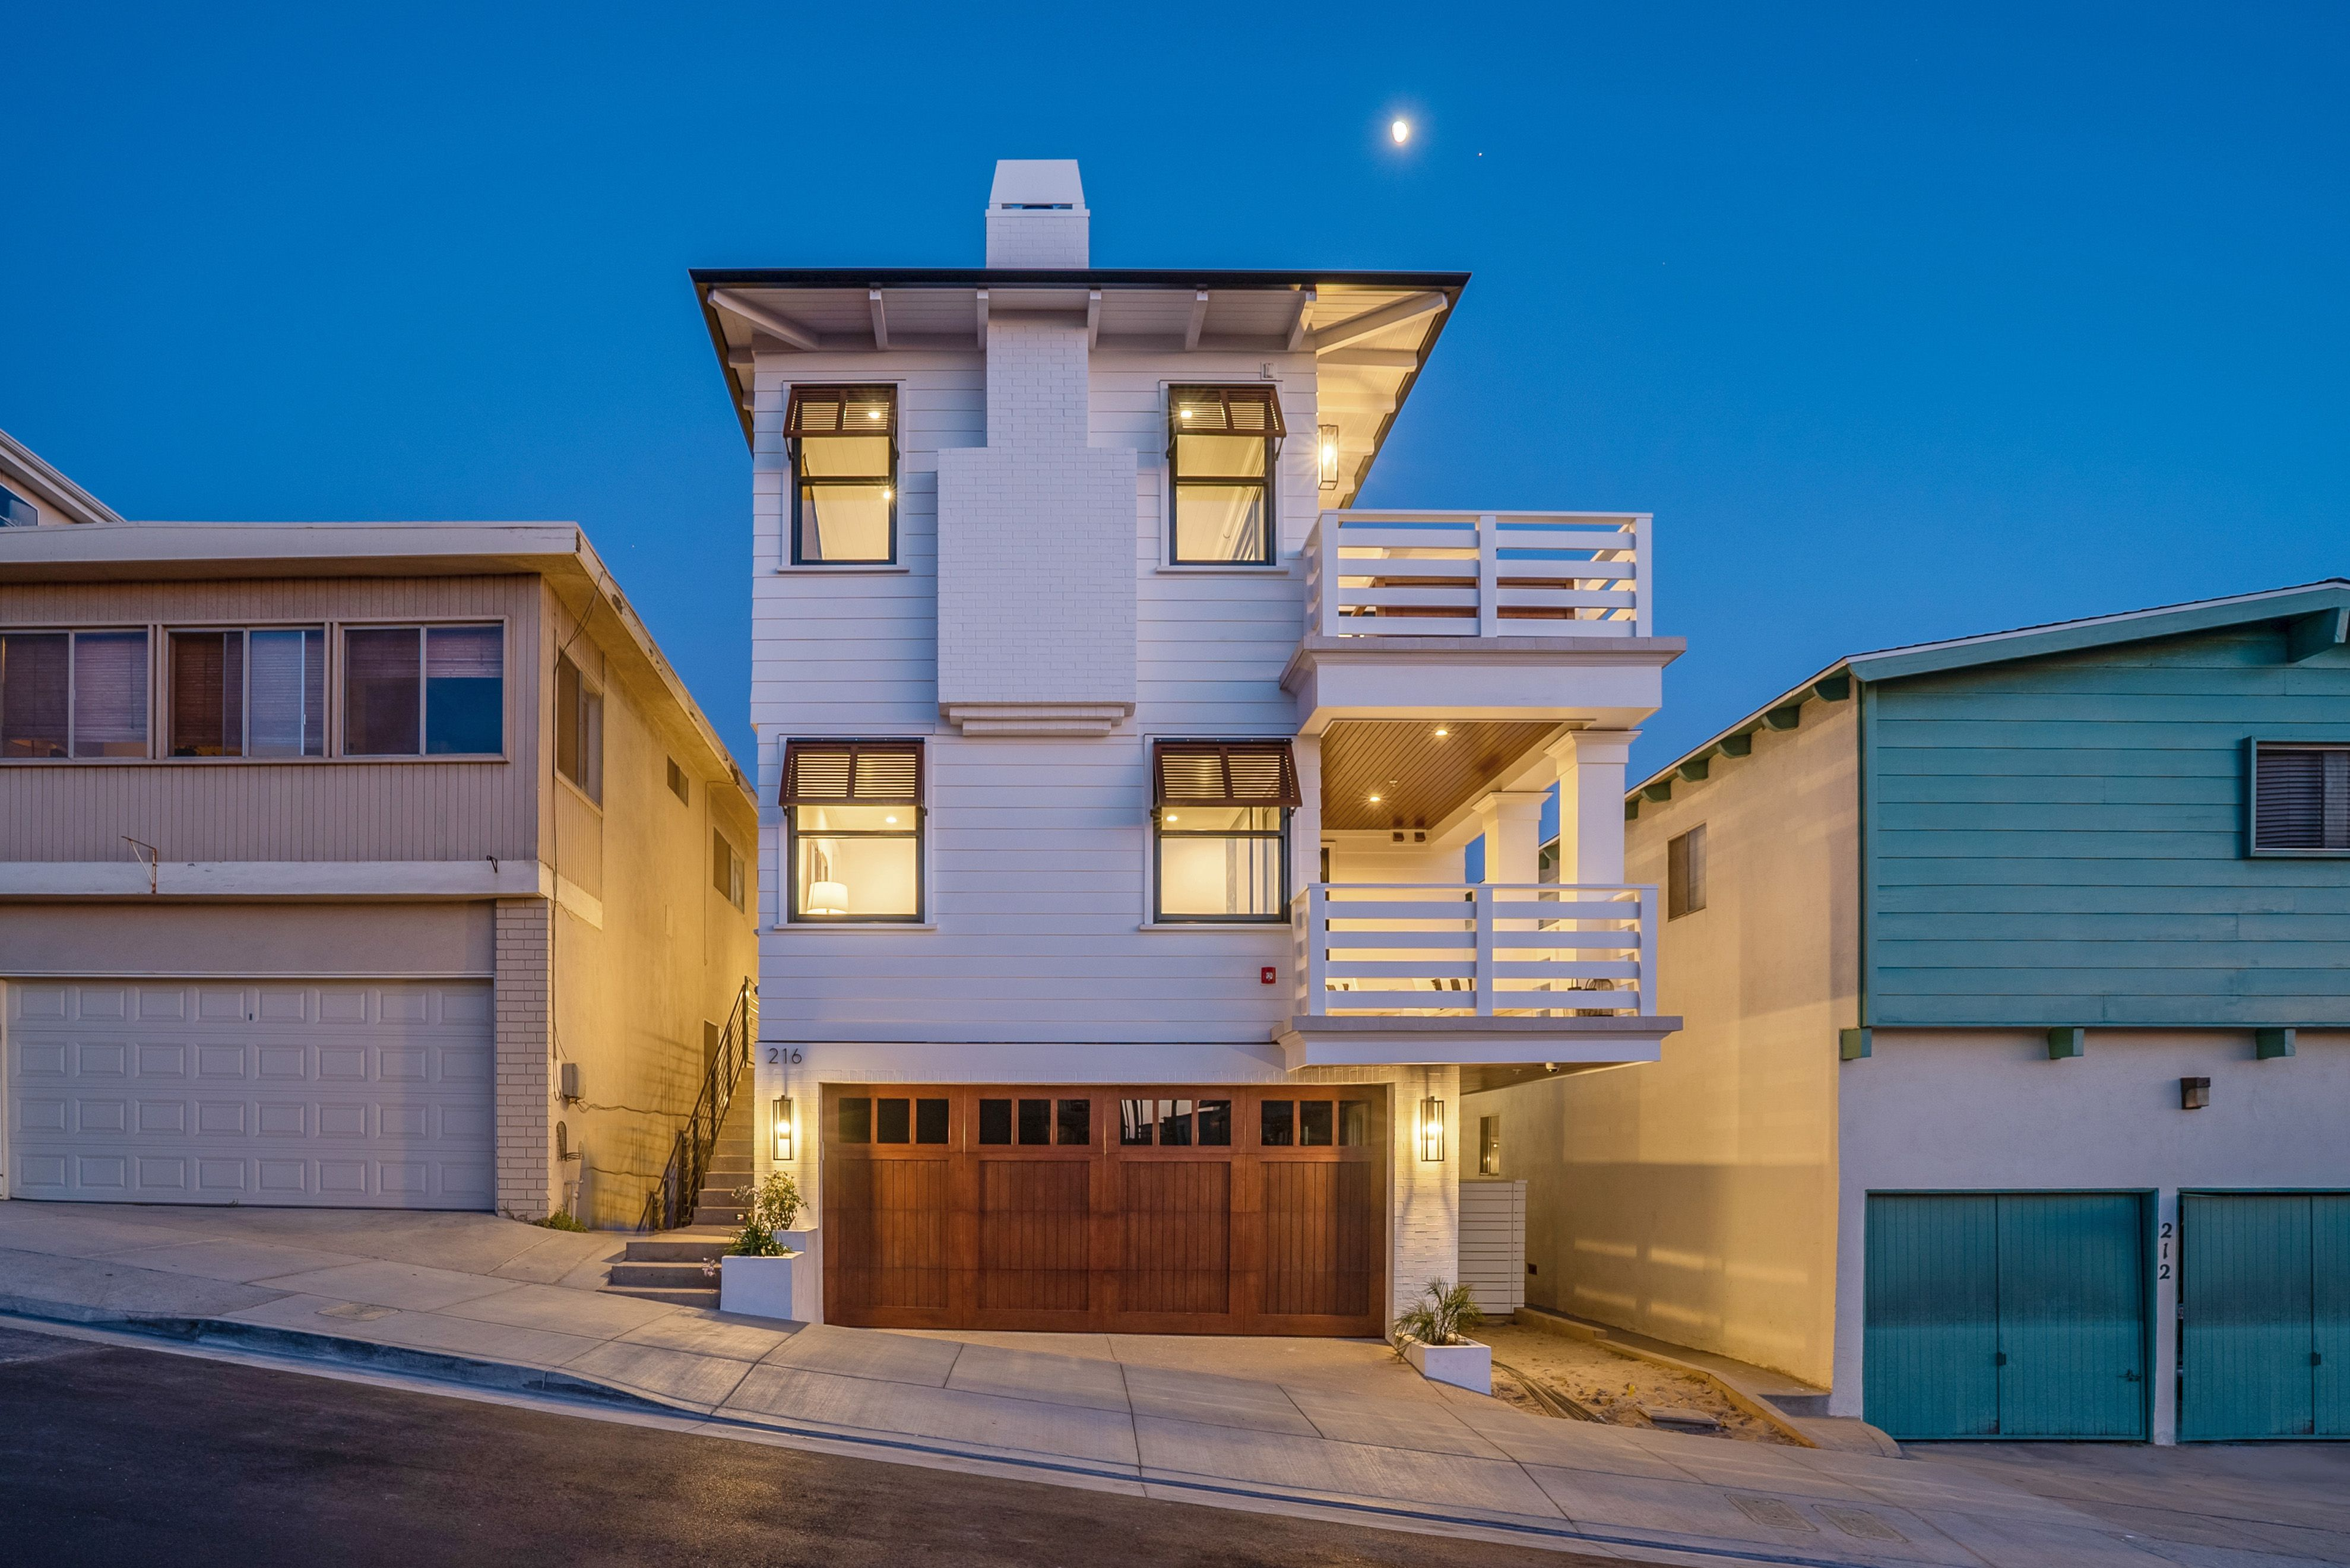 Casa unifamiliar en venta en/de 217 21st Place, Manhattan Beach, California ,90266  , EUA